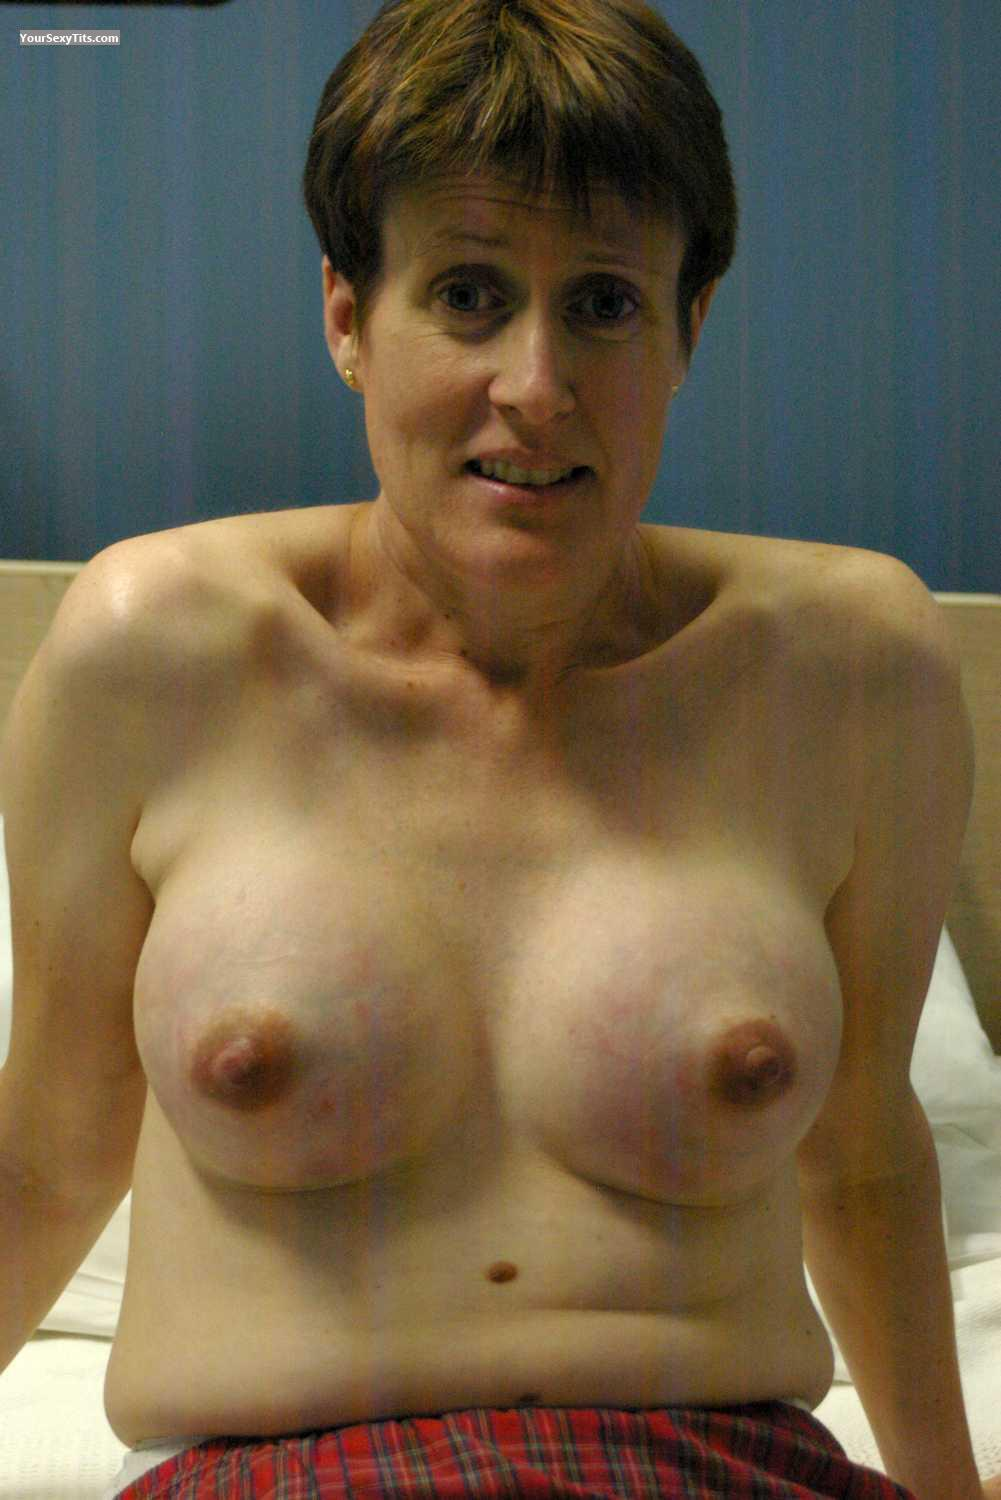 Tit Flash: My Friend's Small Tits - Topless Ashleigh from Australia